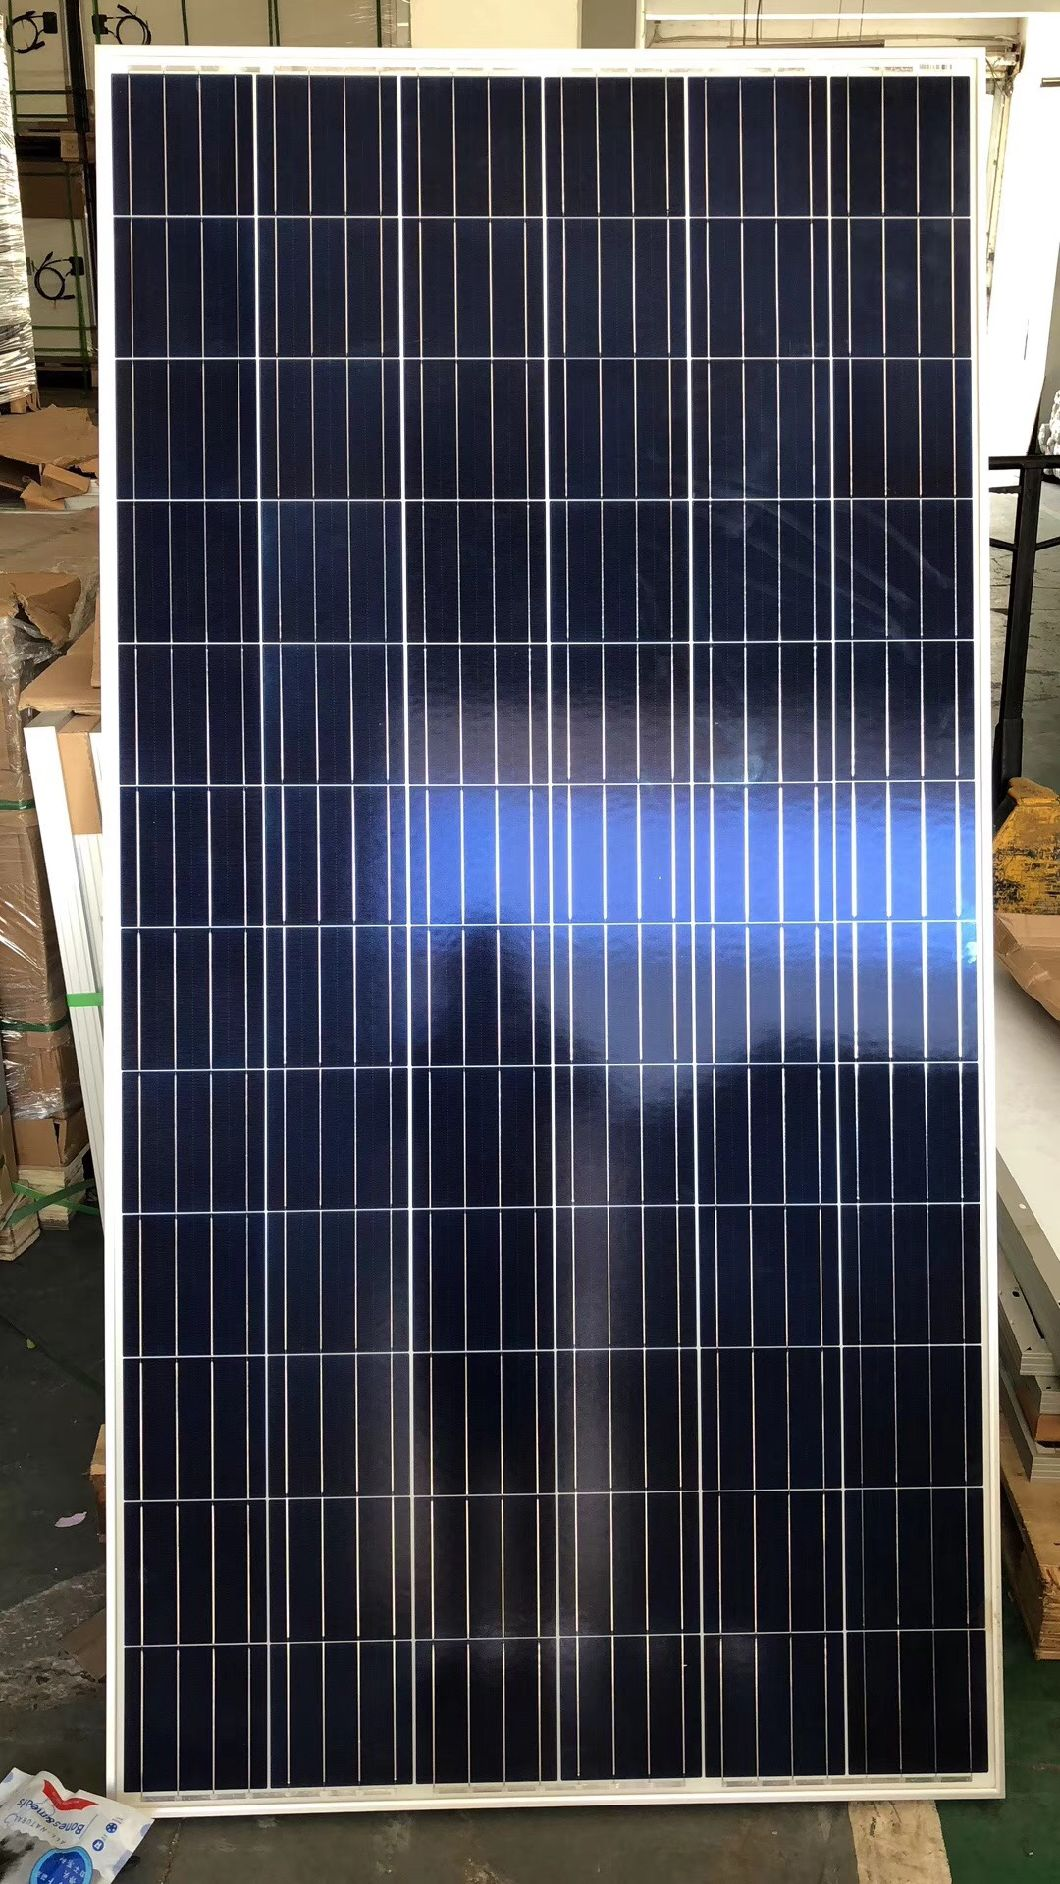 4.33W Poly Solar Cell Available for Order